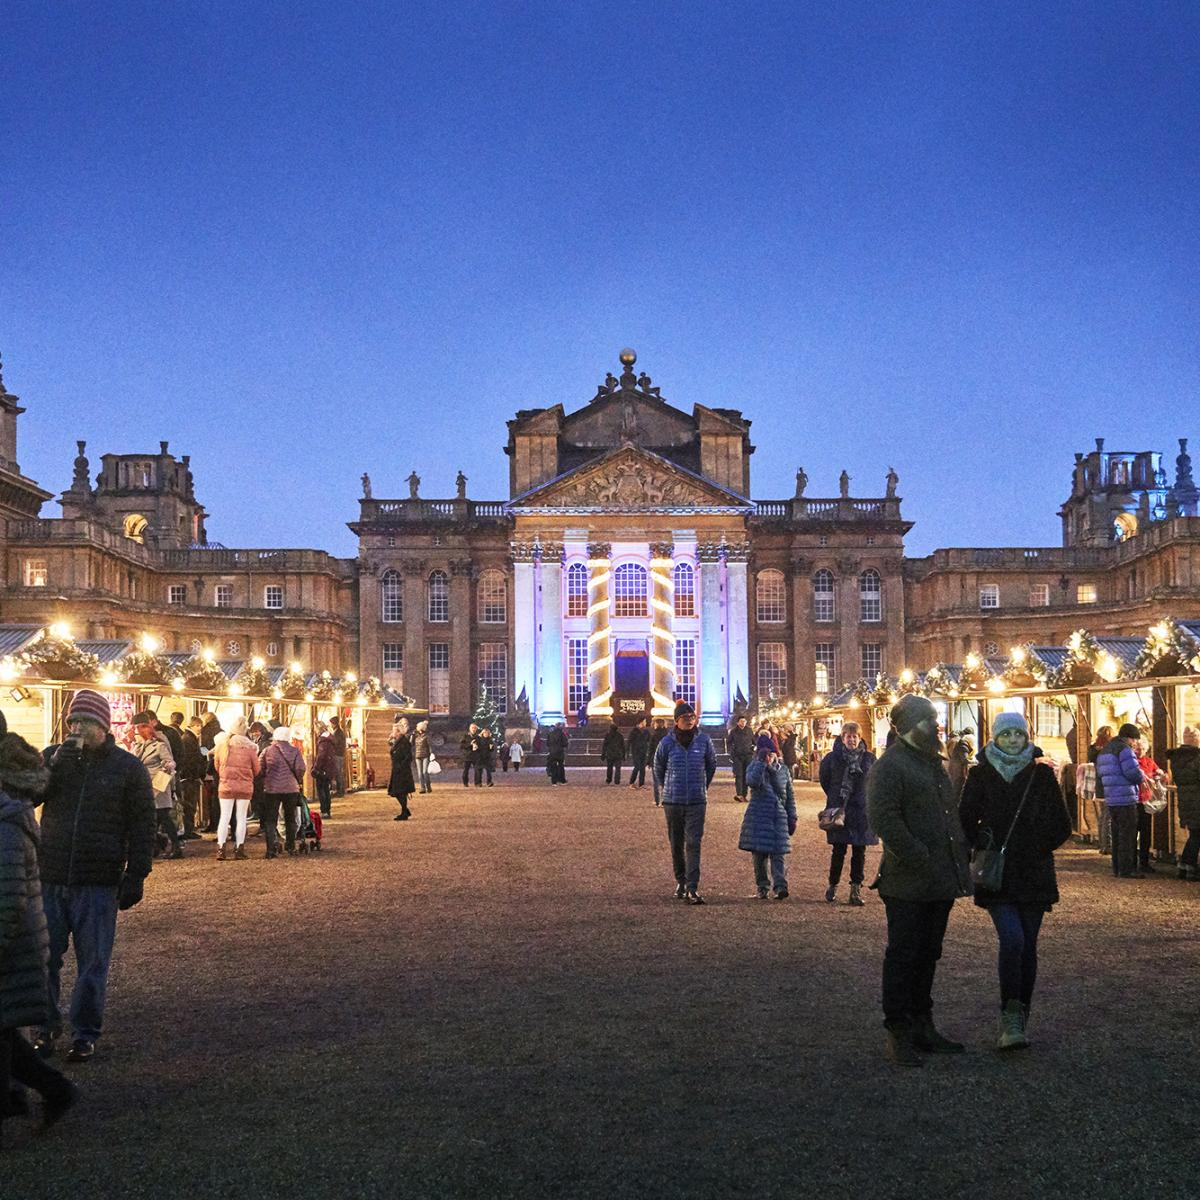 Magical Christmas Places, Blenheim Palace, front courtyard